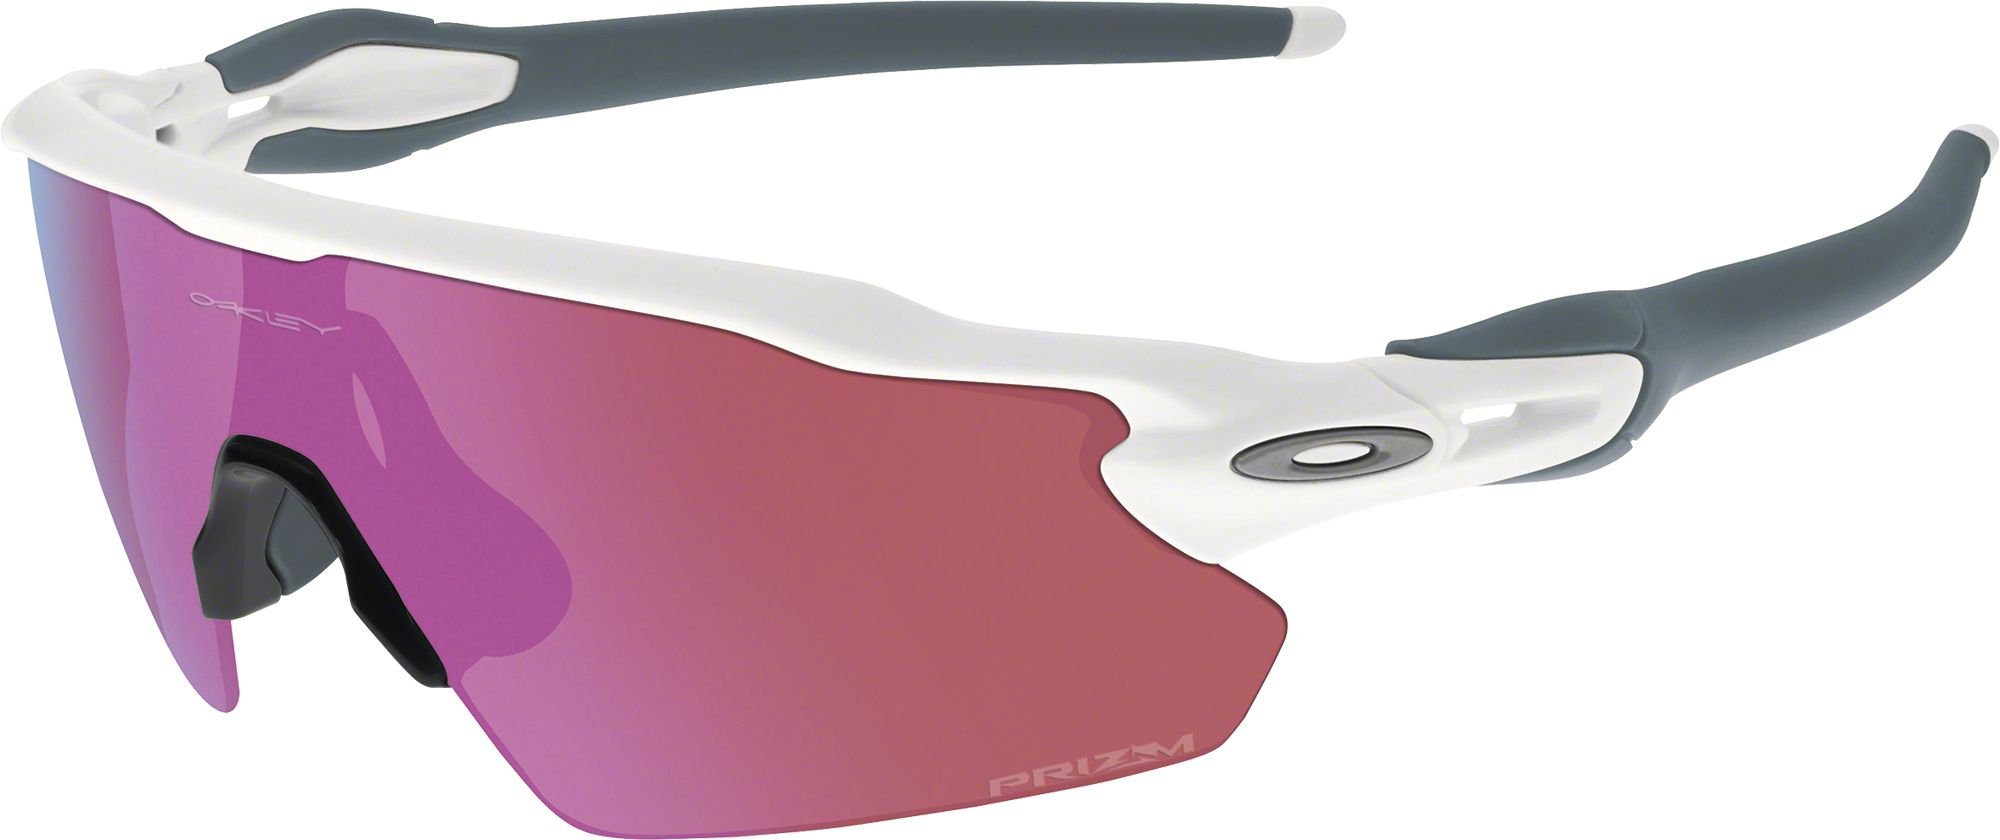 cheap real oakleys  Oakley Sunglasses for Men, Women \u0026 Kids